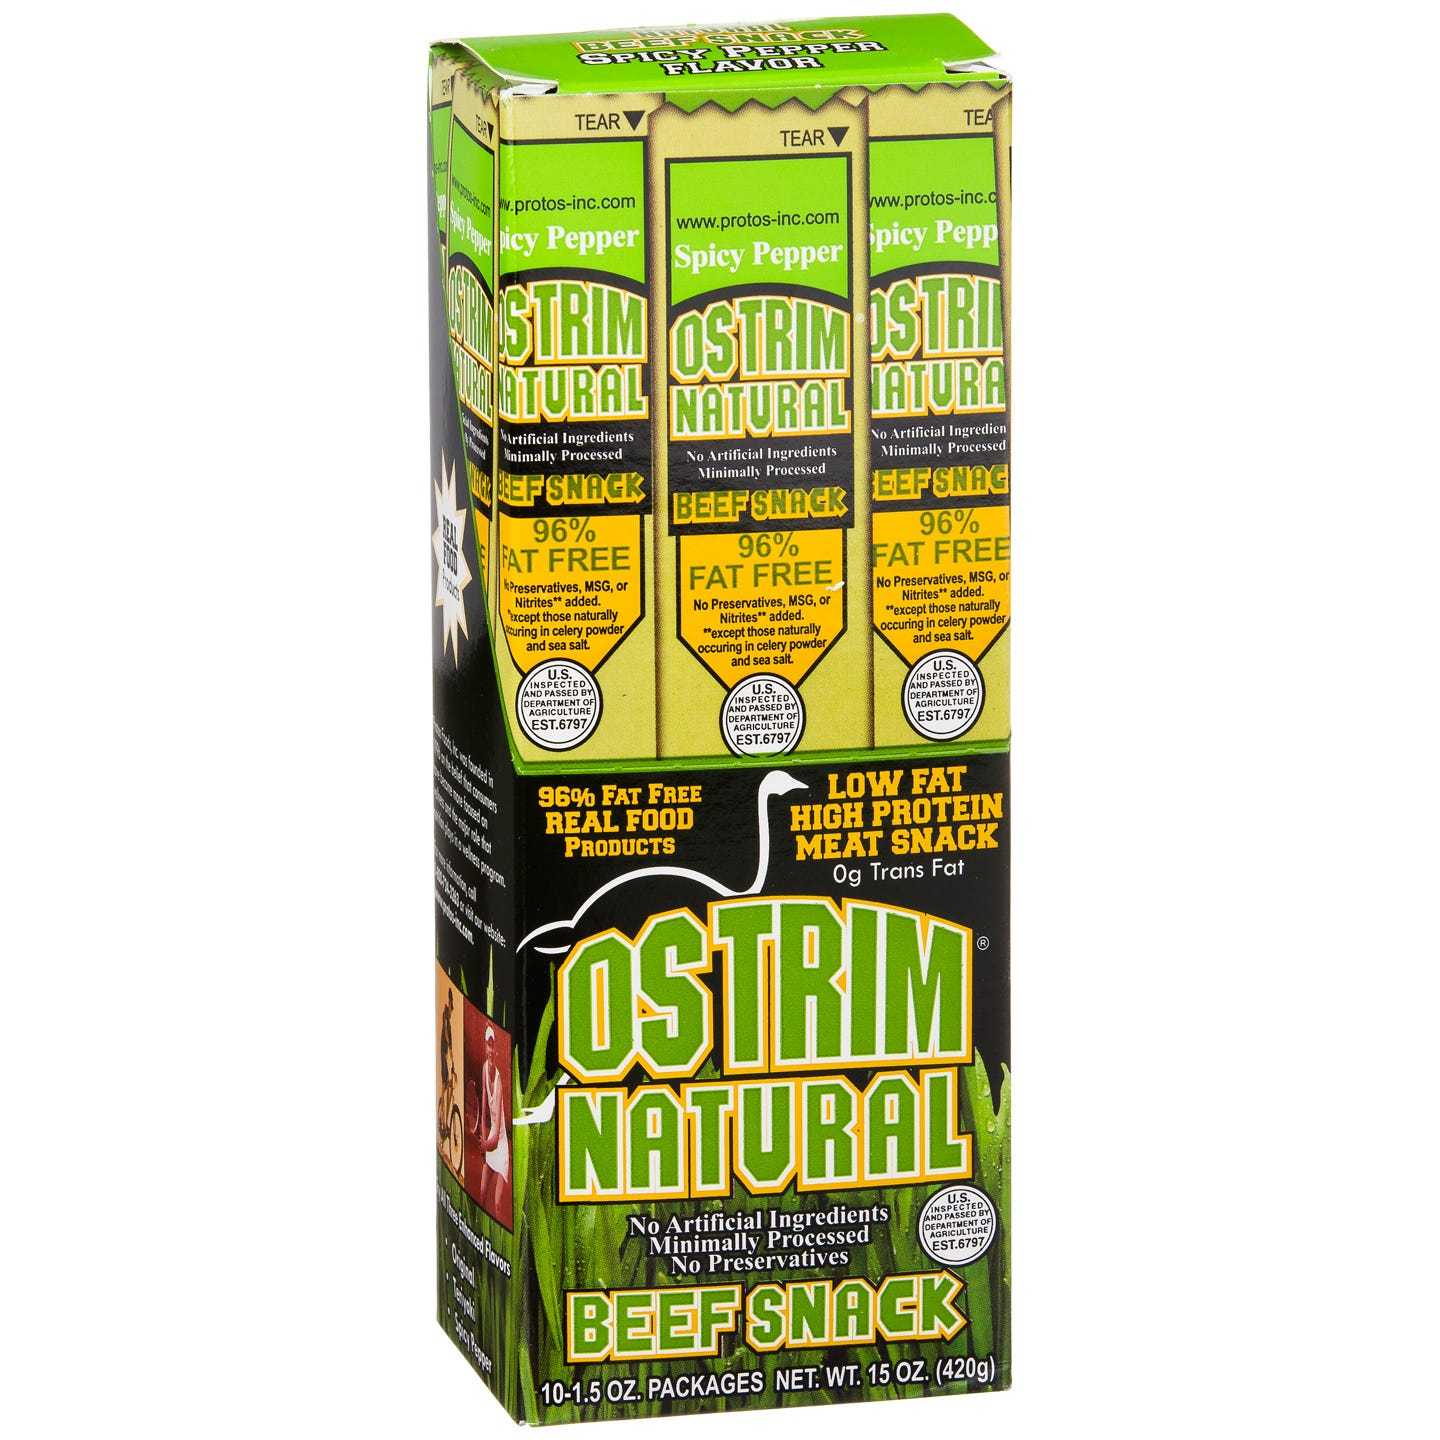 OSTRIM Natural Beef Sticks - Spicy Pepper